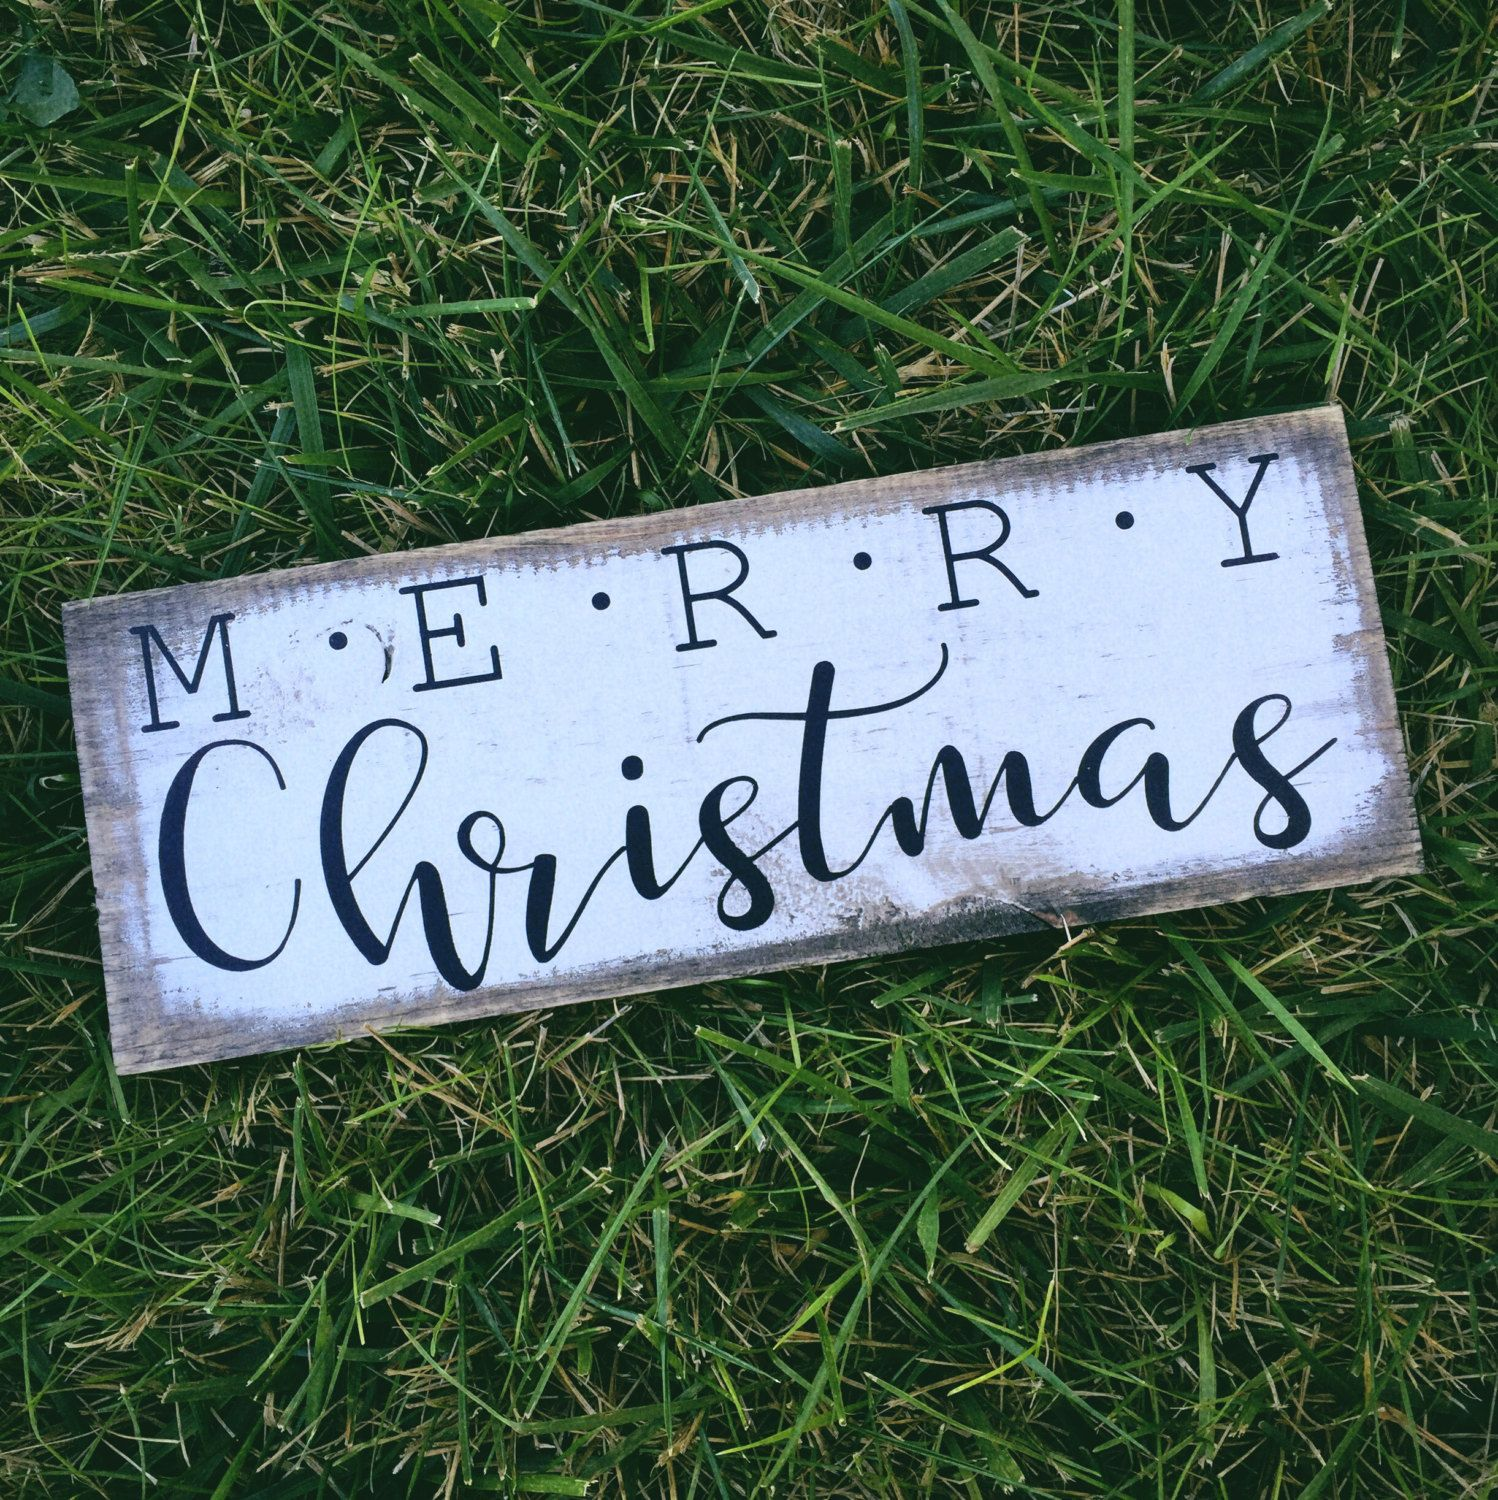 Merry Christmas Rustic Wood Sign Minimalist Décor Farmhouse Holiday 5 X15 By Mycraftshed On Etsy